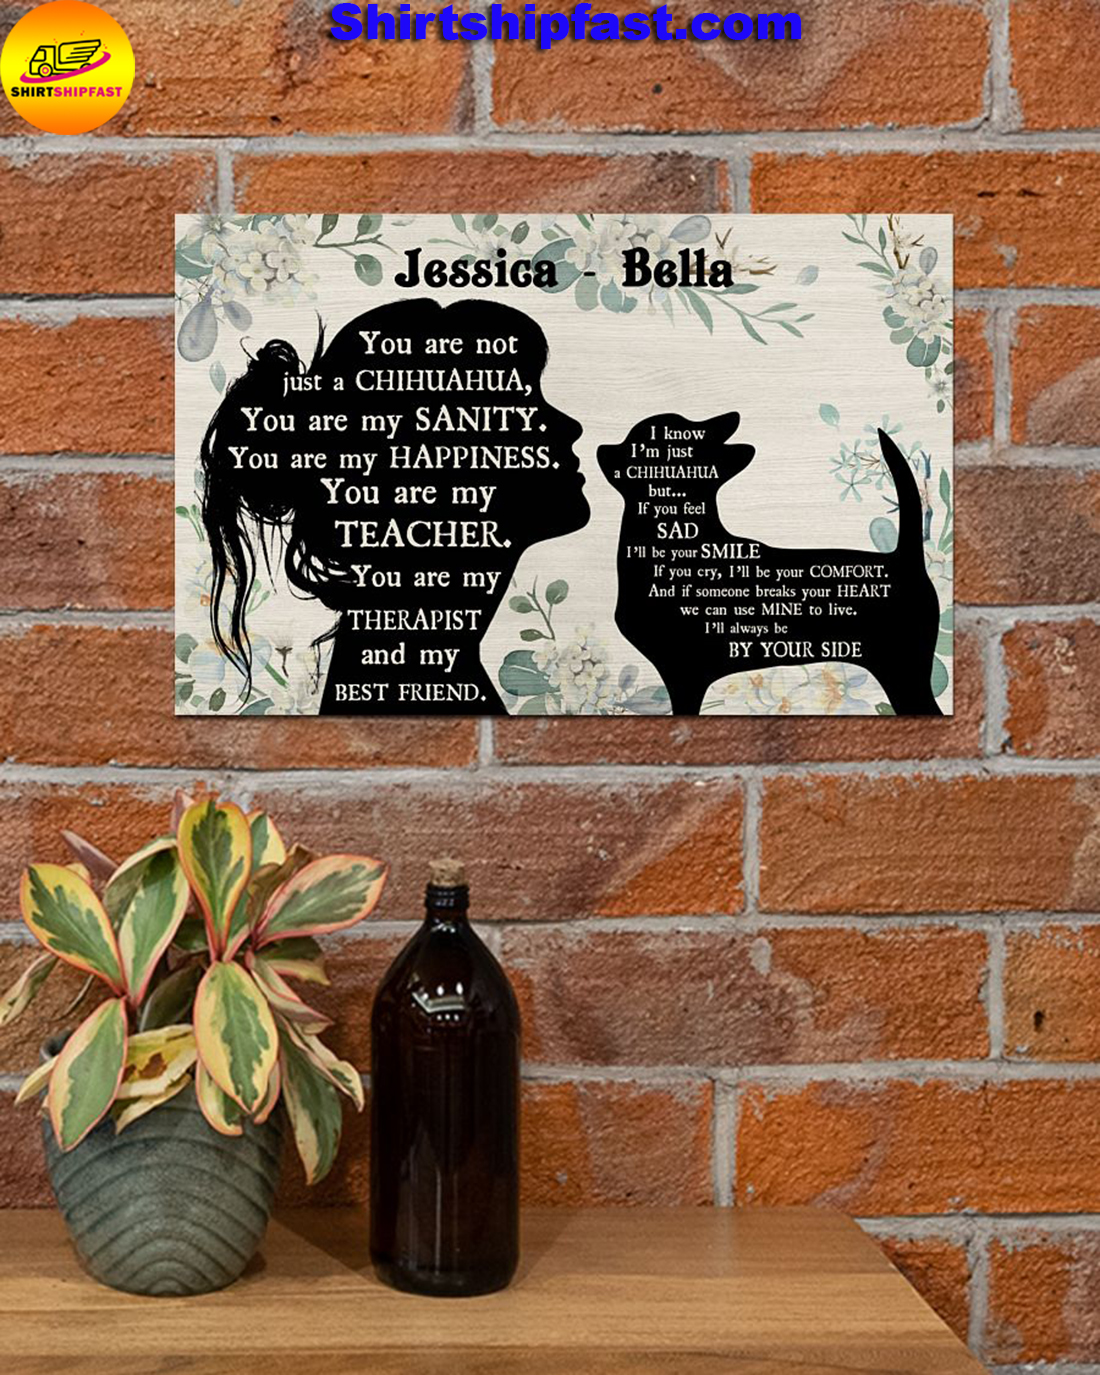 You are not just a chihuahua personalized poster - Picture 2